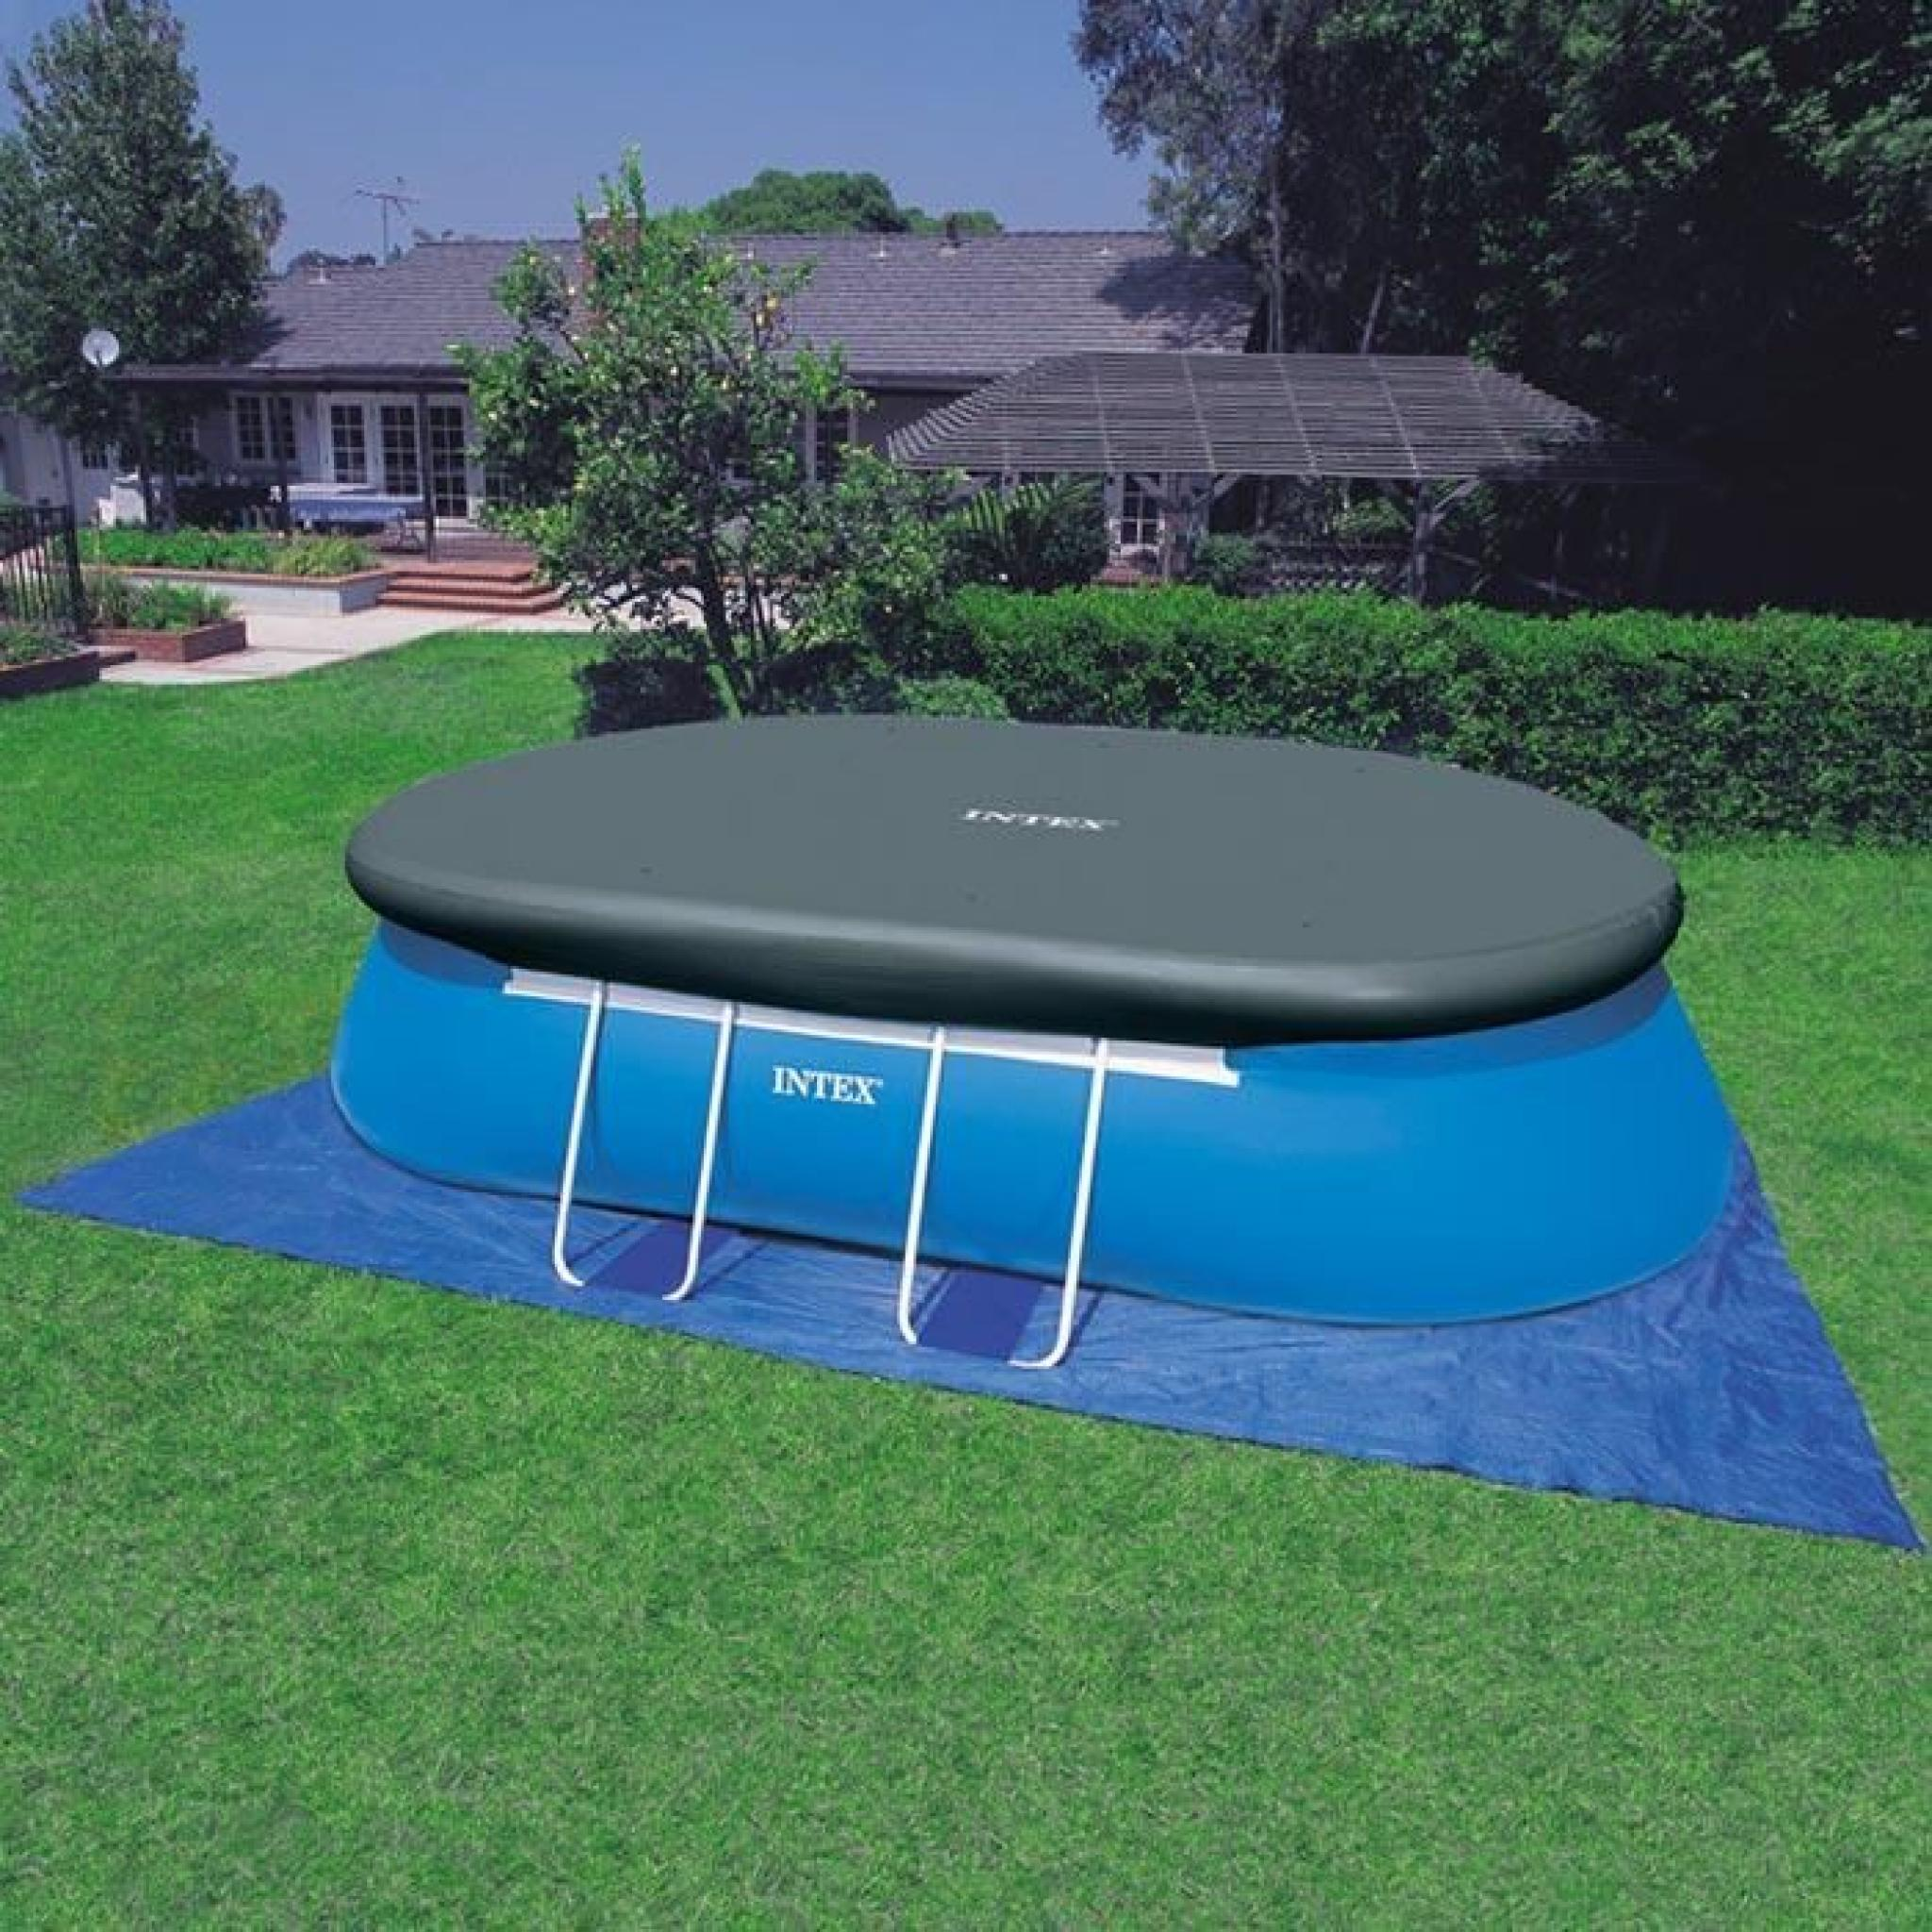 Intex 28192 piscine hors sol oval frame 549x305x107 - Piscine rectangulaire hors sol intex ...